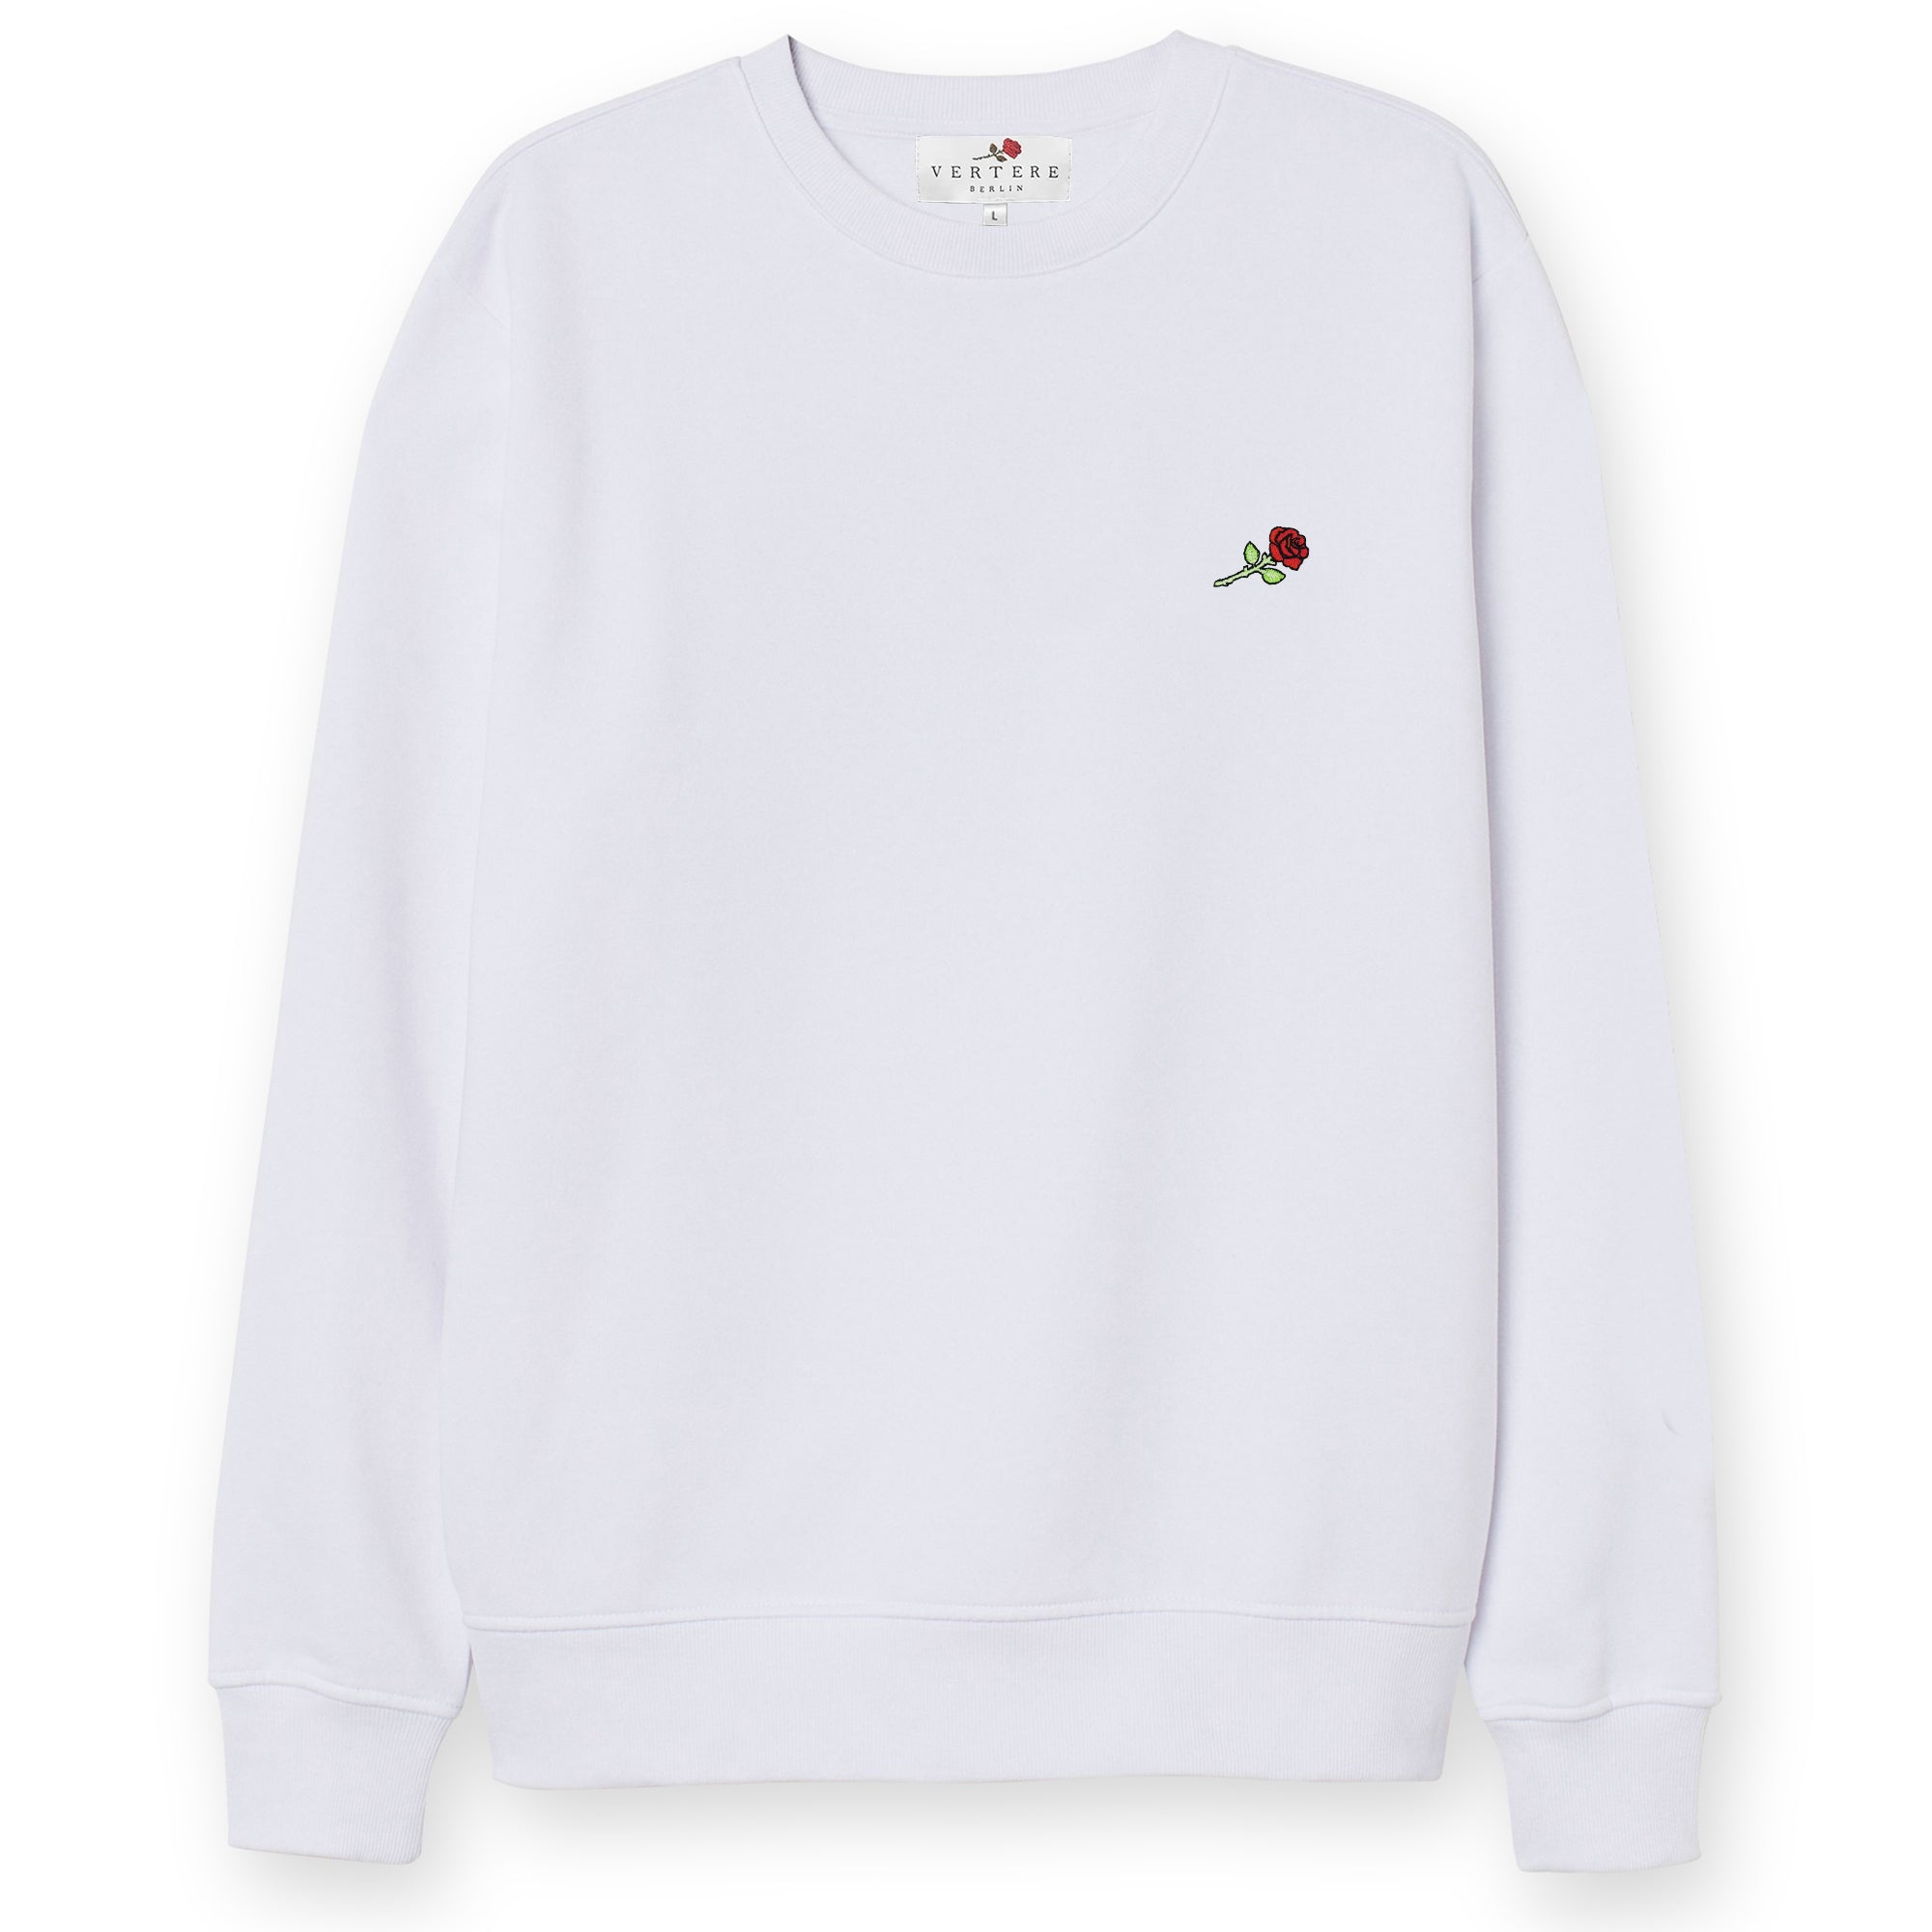 SECOND HAND EMOTION SWEATER - WHITE